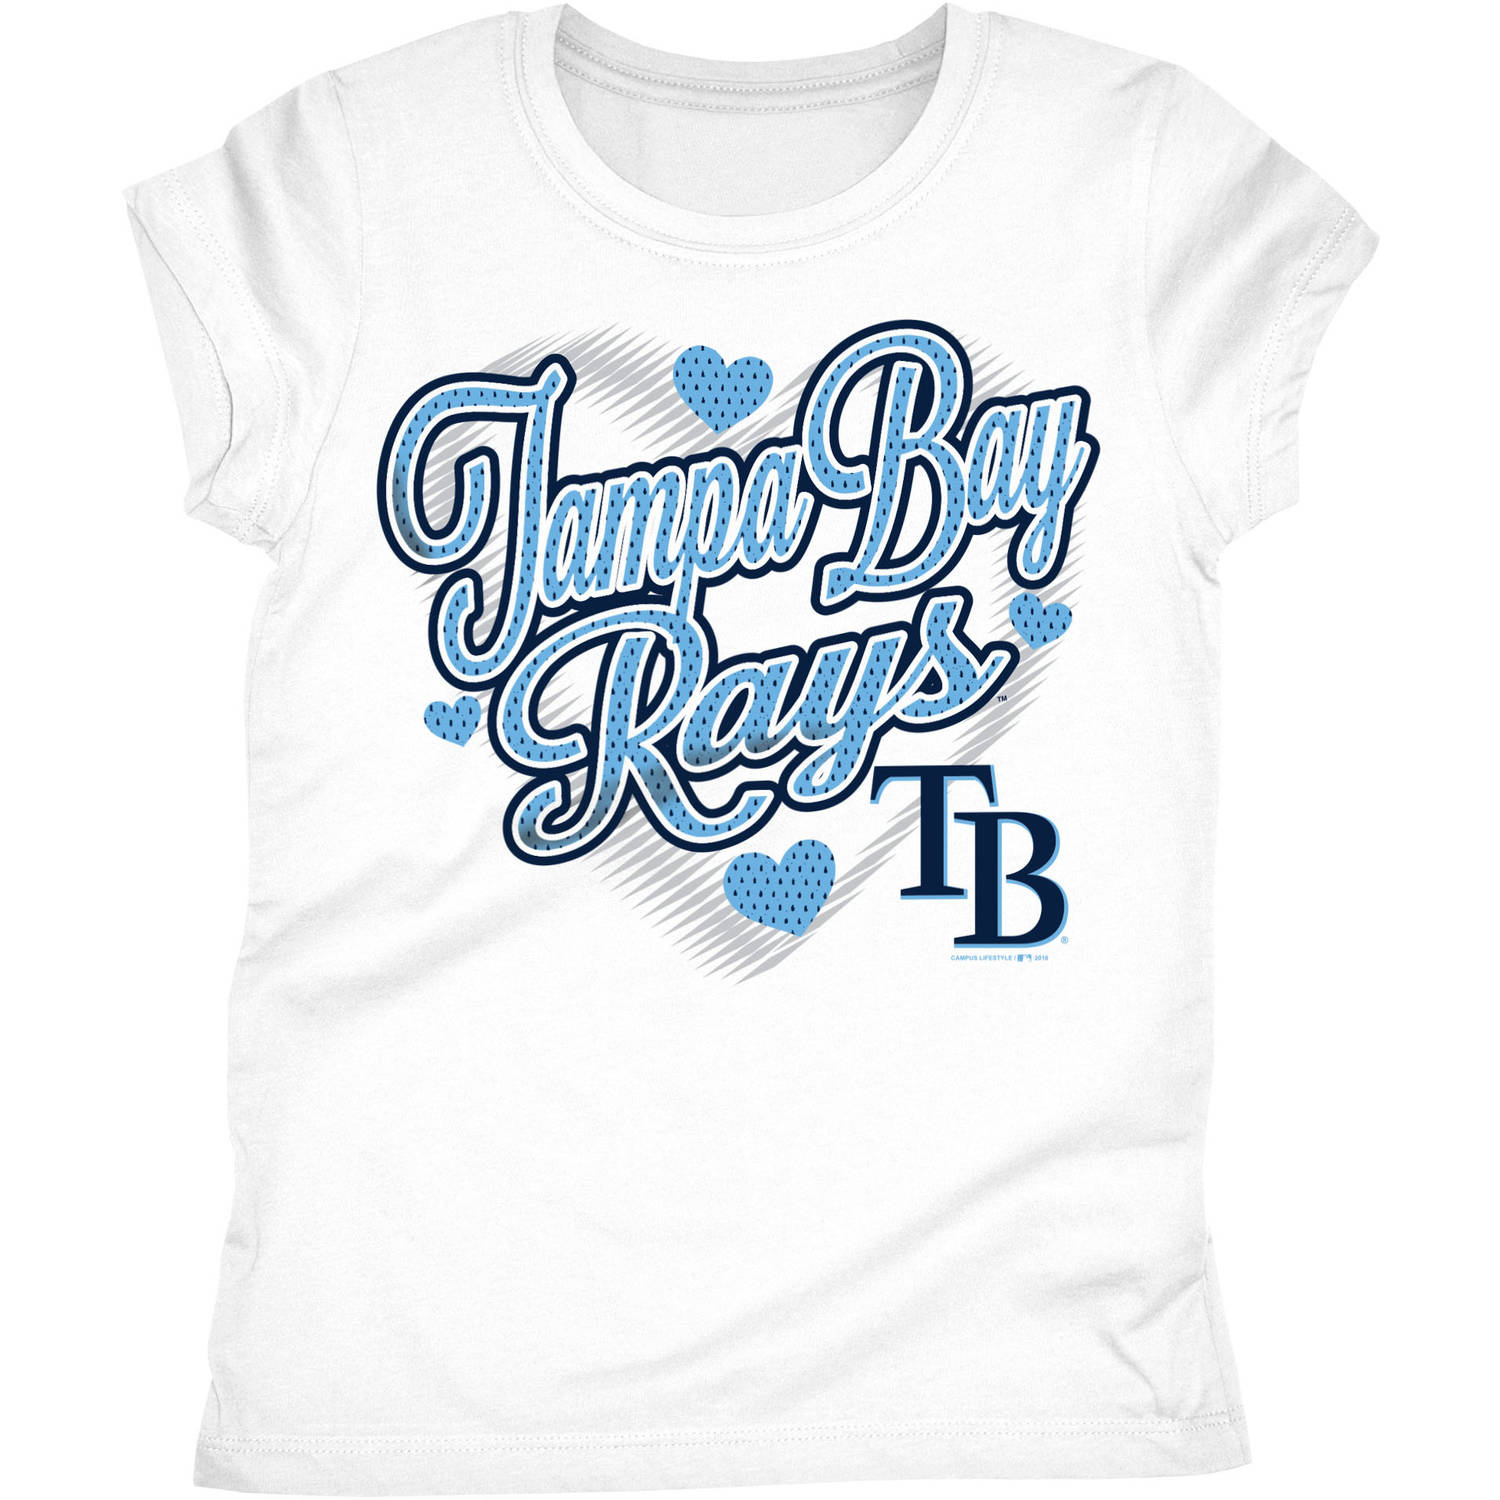 Tampa Bay Rays Girls Short Sleeve Graphic Tee